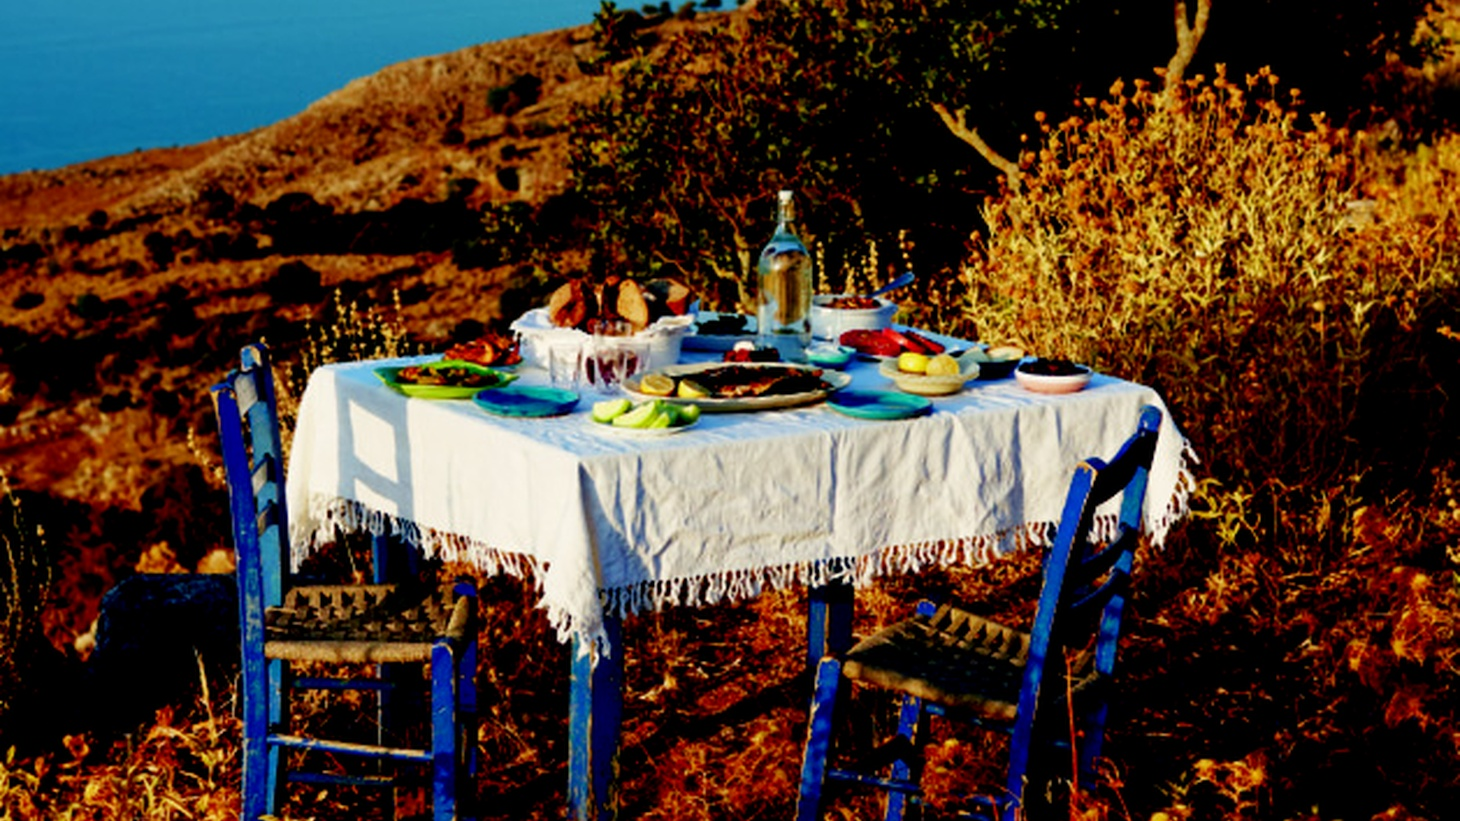 """In her book """"Aegean,"""" Marianna Leivaditaki describes her magical childhood in Greece and working in the family's restaurant, which served her fisherman father's catch."""